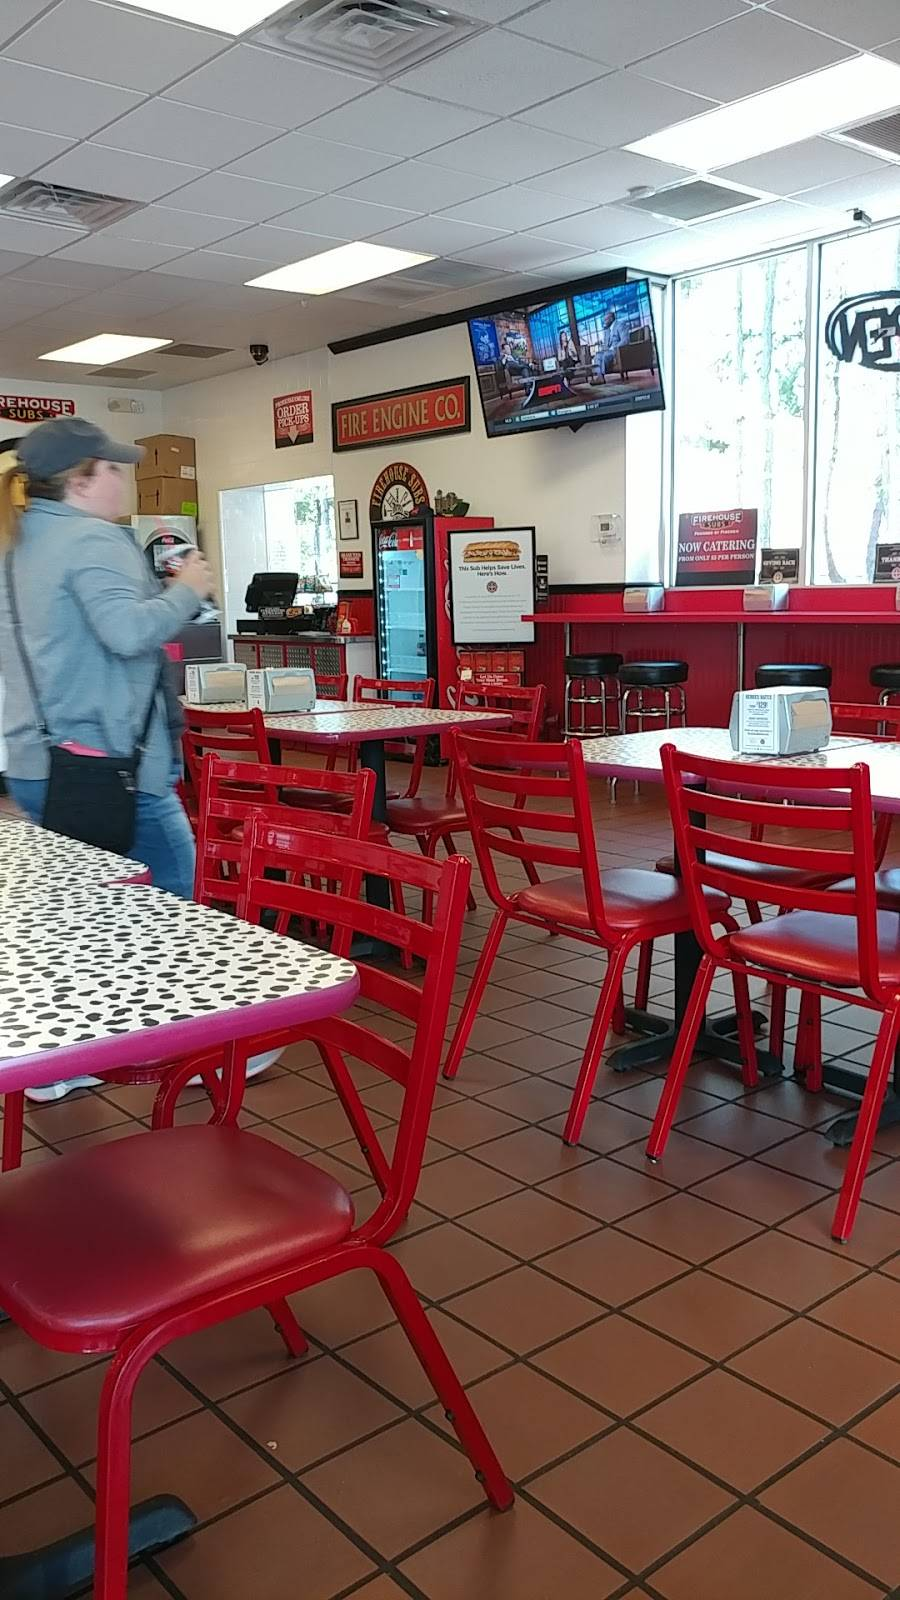 Firehouse Subs   meal delivery   1300 W Corporate Ct, Lithia Springs, GA 30122, USA   7704854552 OR +1 770-485-4552